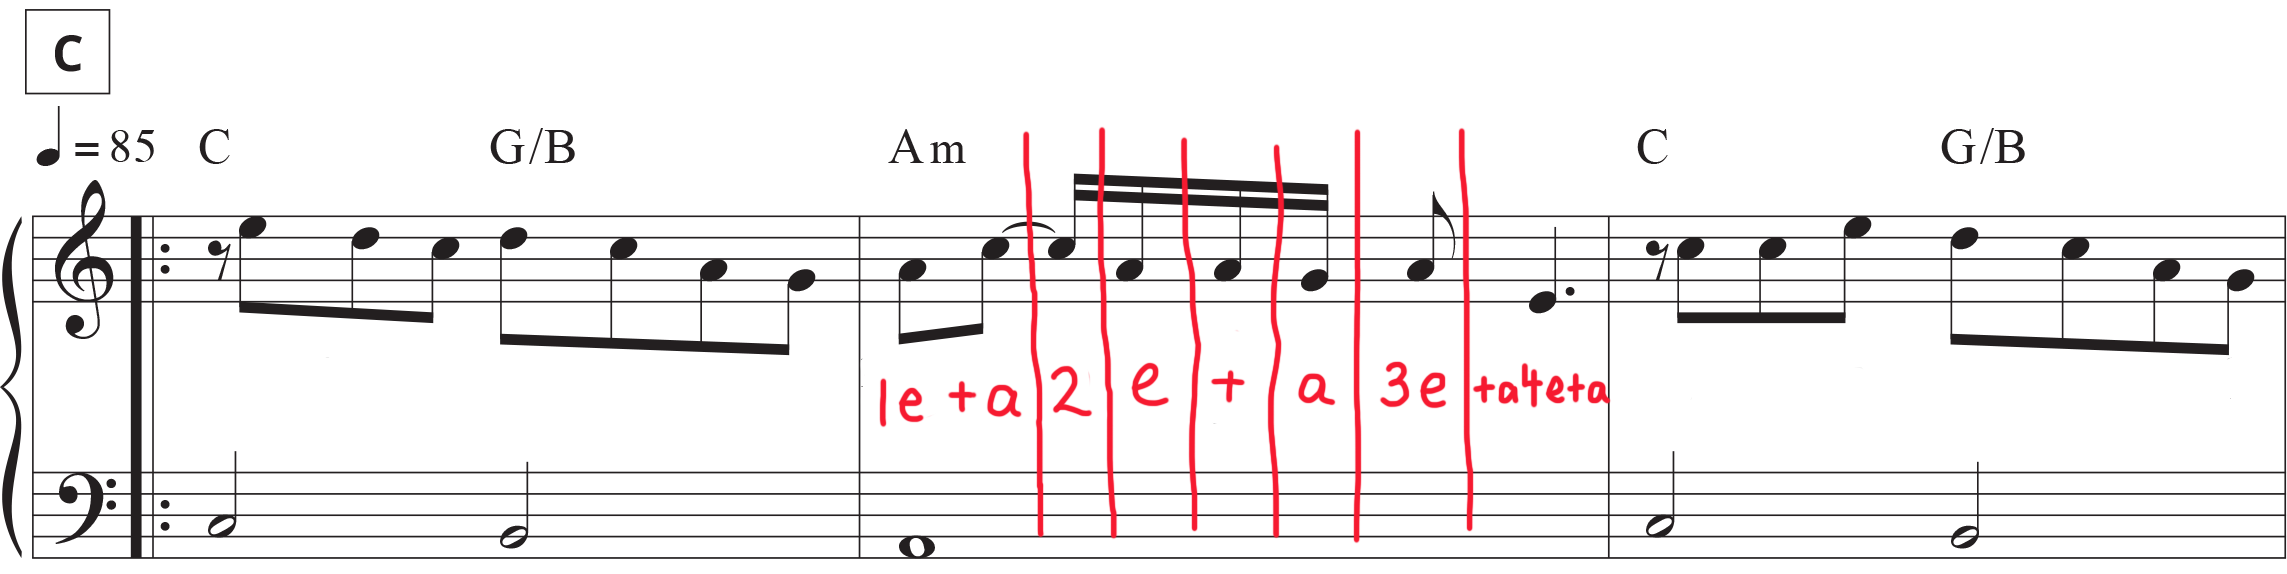 Section C Stairway to Heaven sheet music with counting mark-up of sixteenth notes.